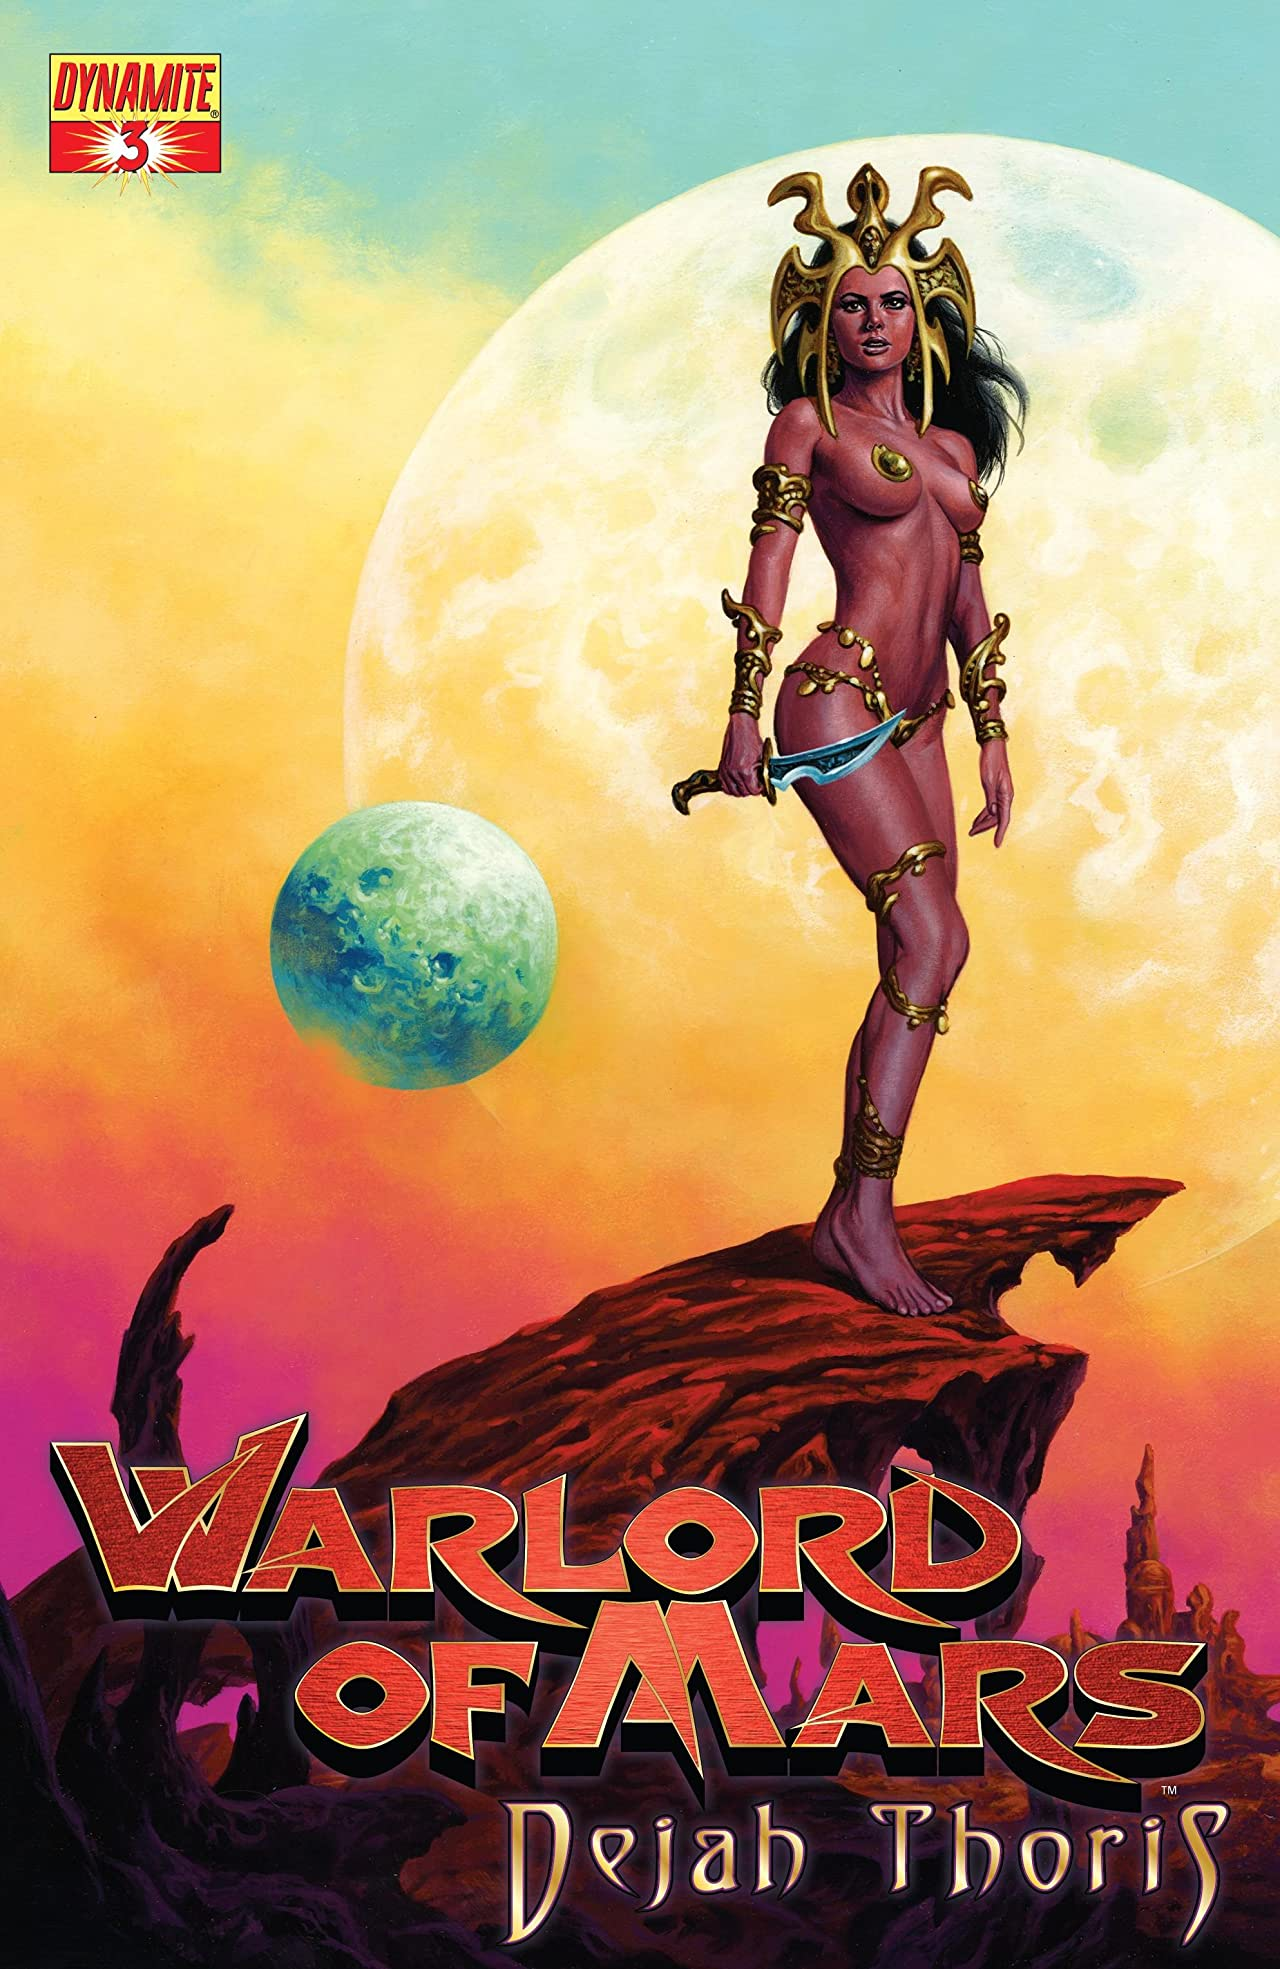 Warlord of Mars: Dejah Thoris #3